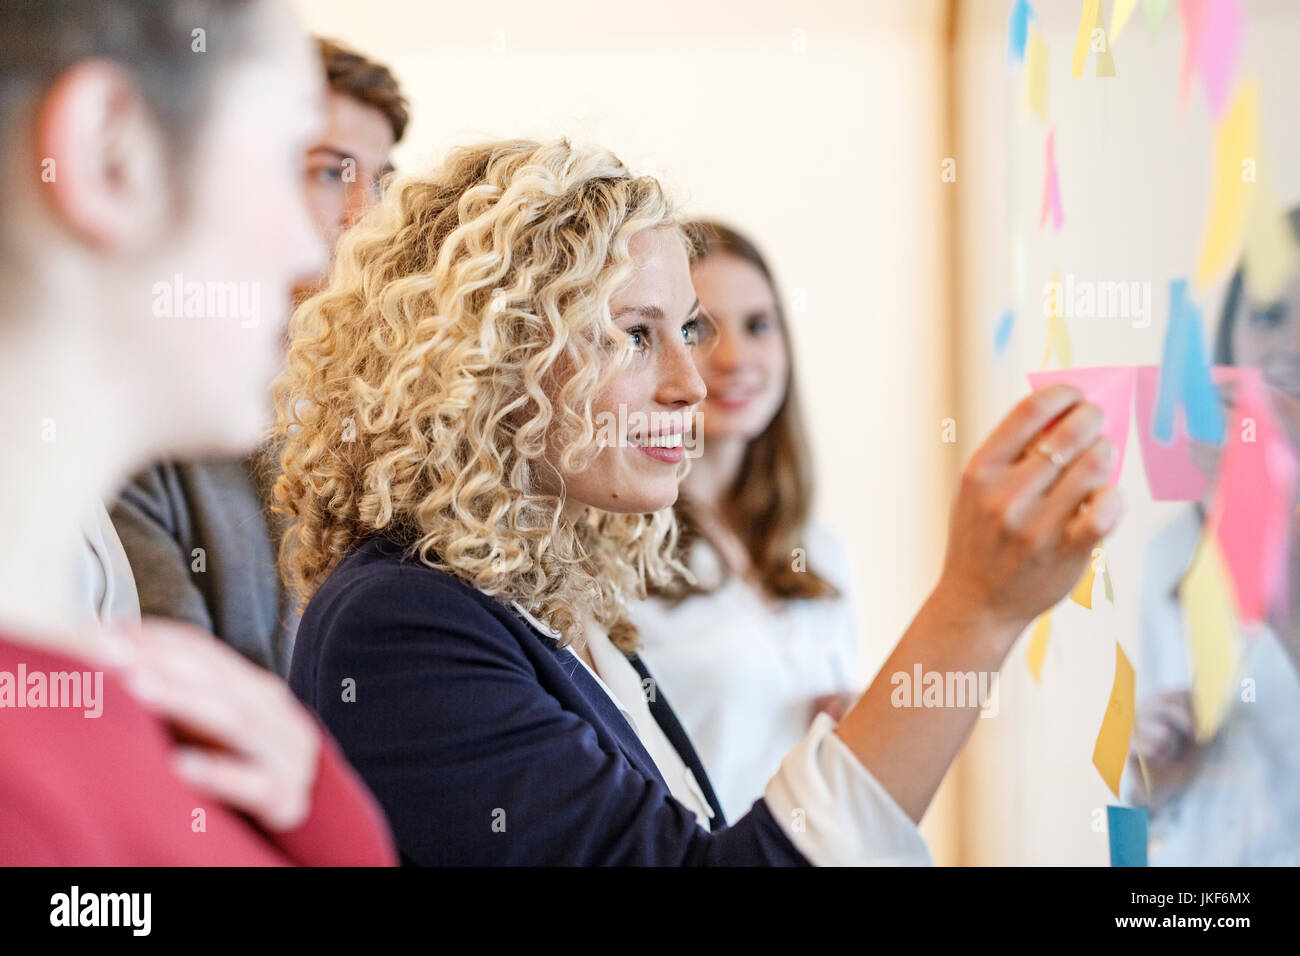 Colleagues in office at glass pane with adhesive notes - Stock Image